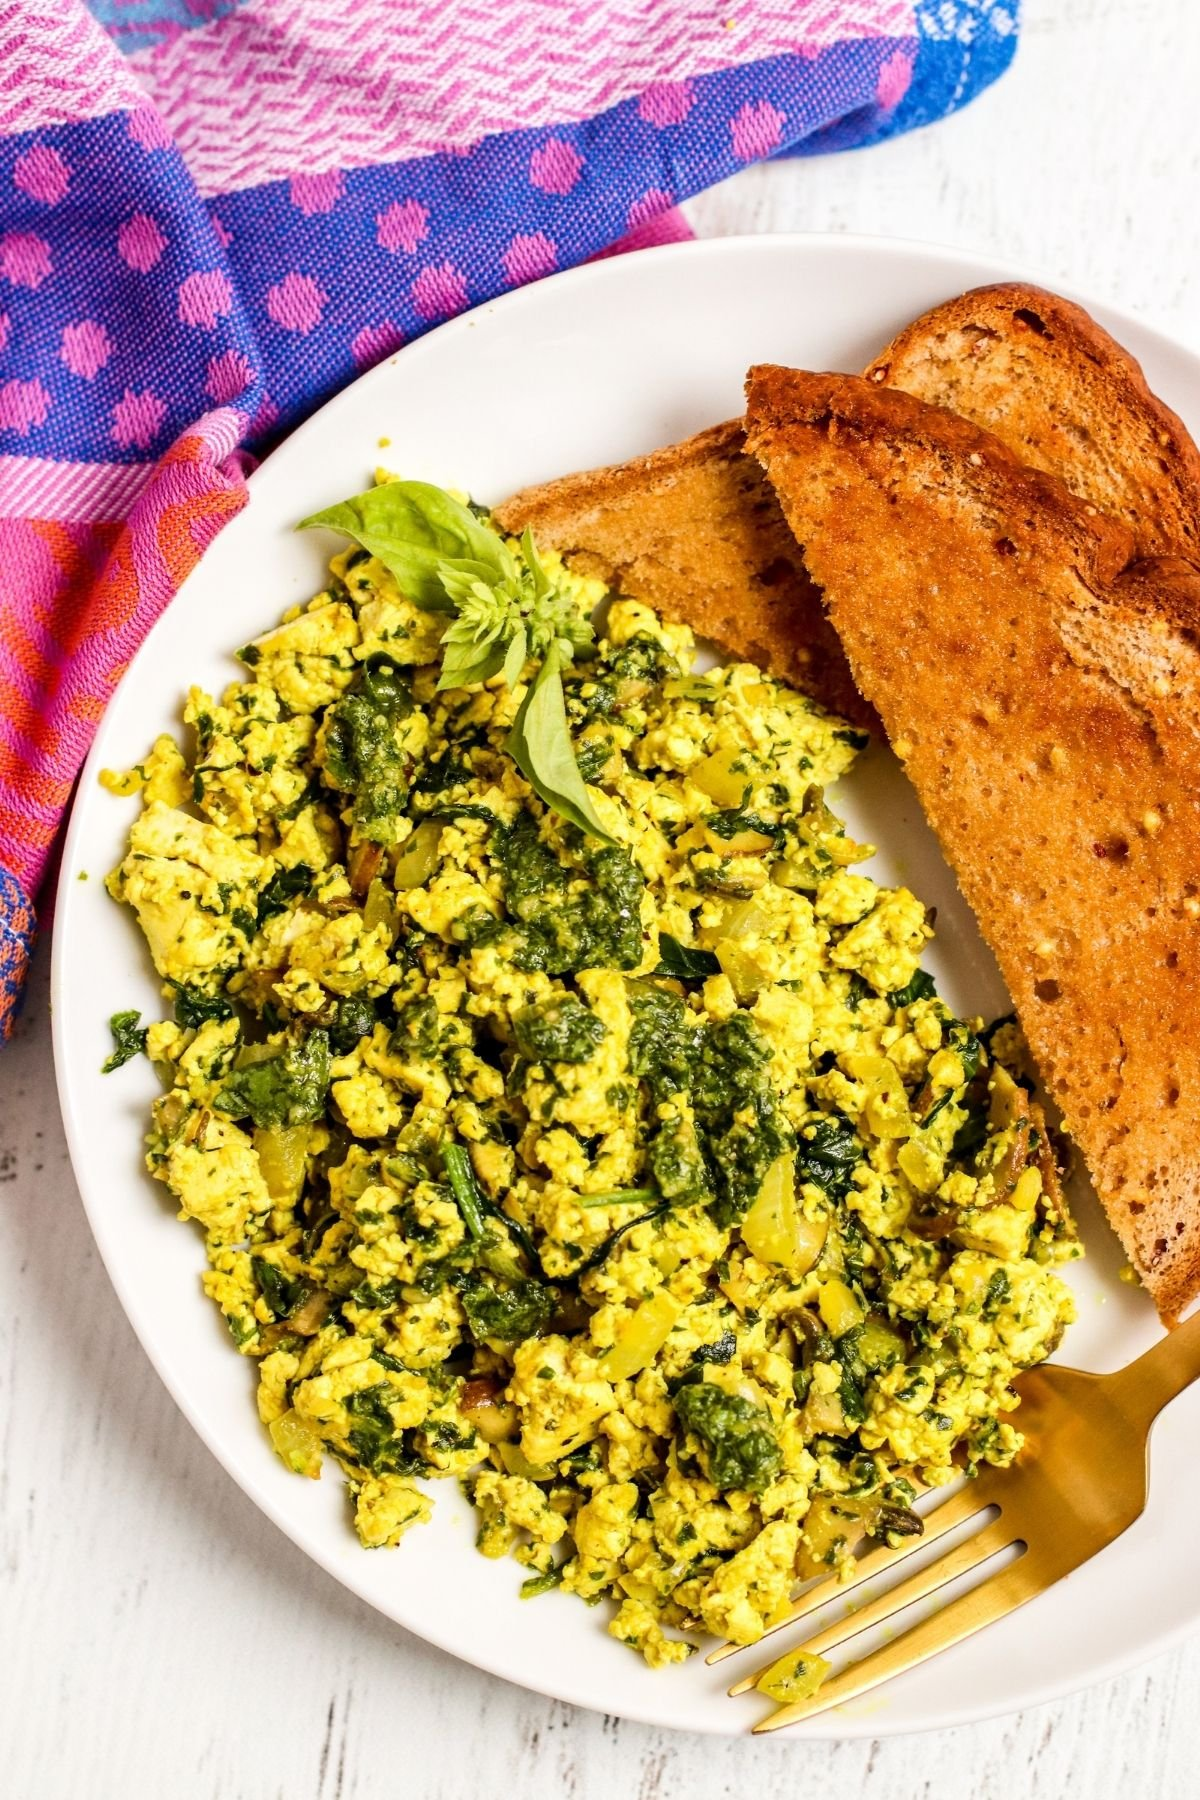 Overhead of plate with pesto scrambled tofu and toast with gold fork and purple napkin